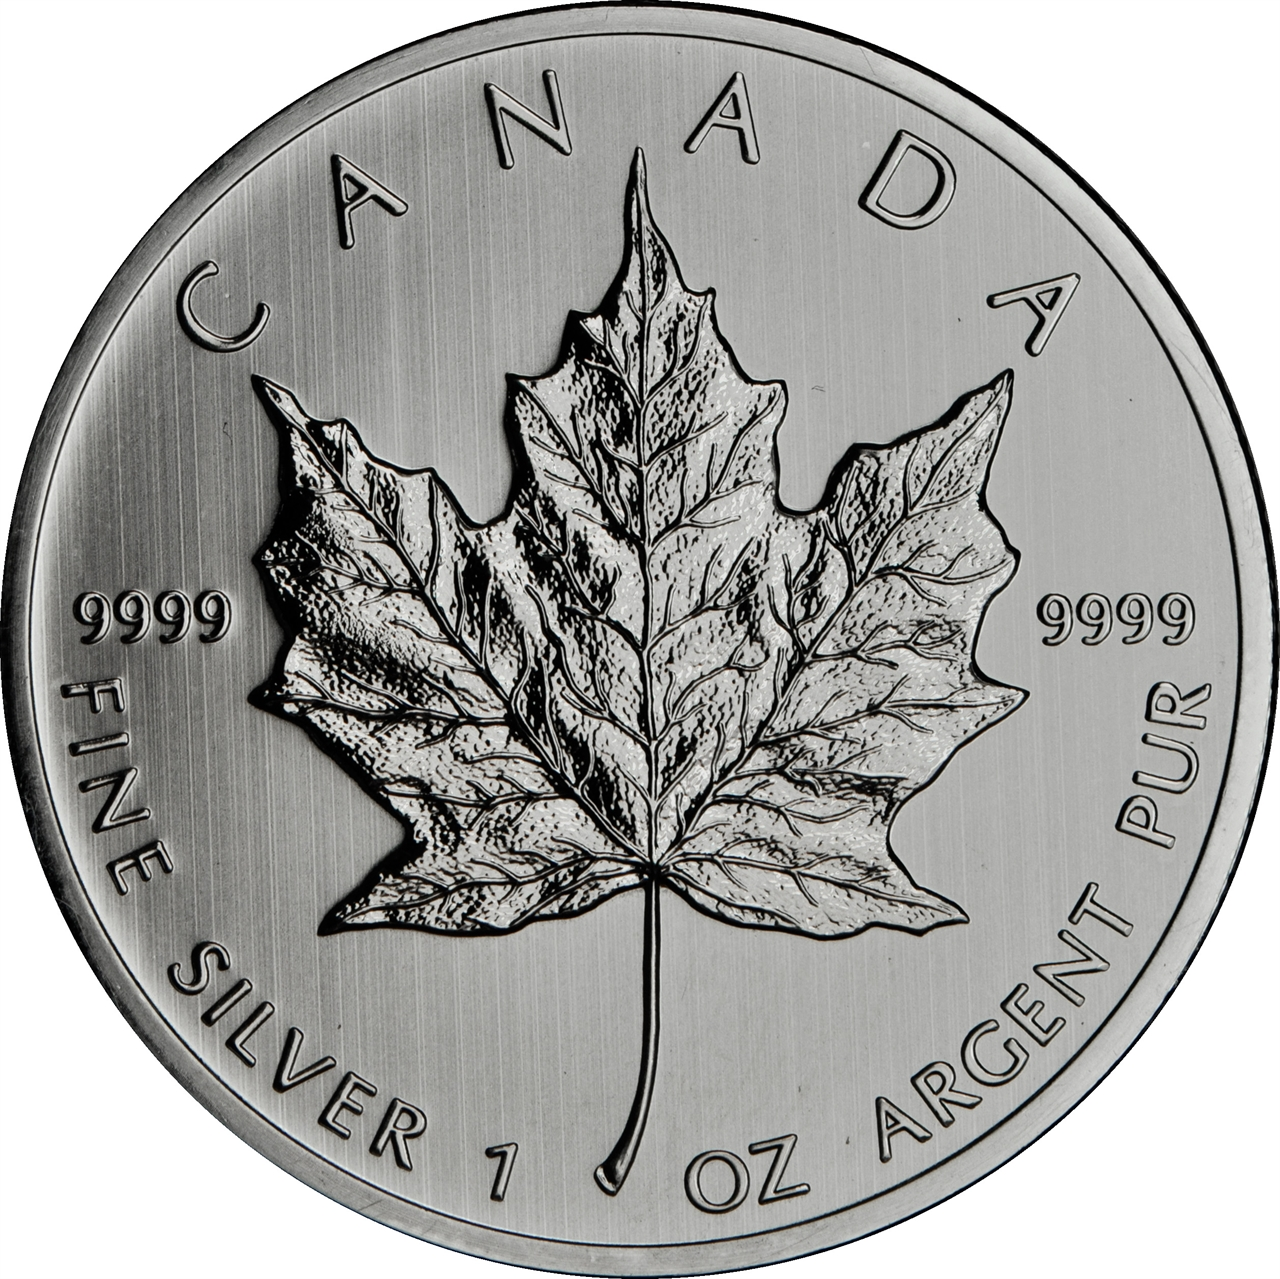 2013 Silver Maple Leaf Bullion Coin A Staple Canadian Coin